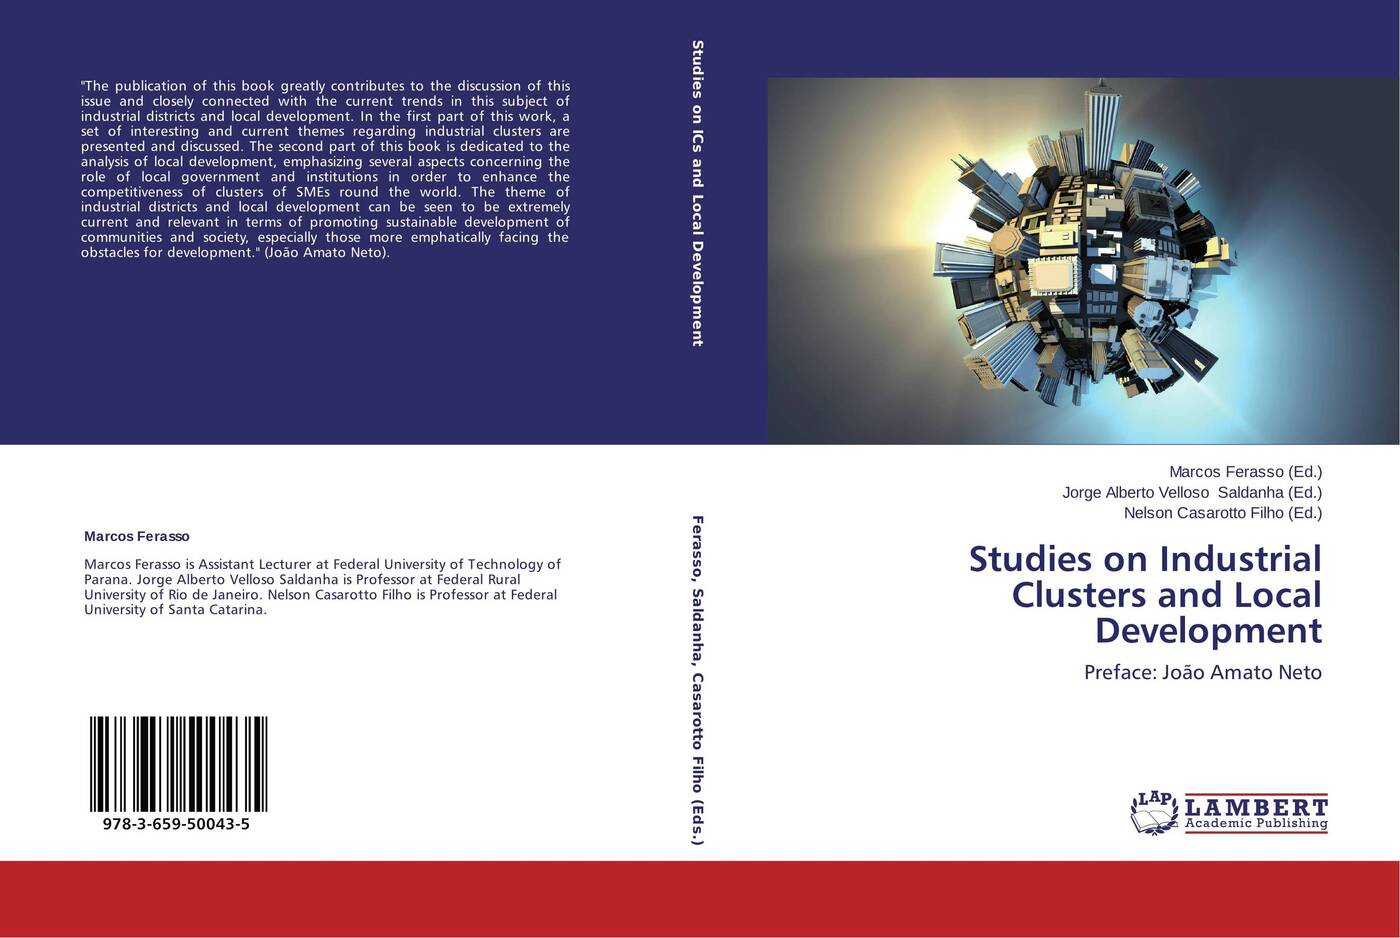 Фото - Marcos Ferasso,Jorge Alberto Velloso Saldanha and Nelson Casarotto Filho Studies on Industrial Clusters and Local Development piya das and subhrabaran das competitiveness and role of research and development